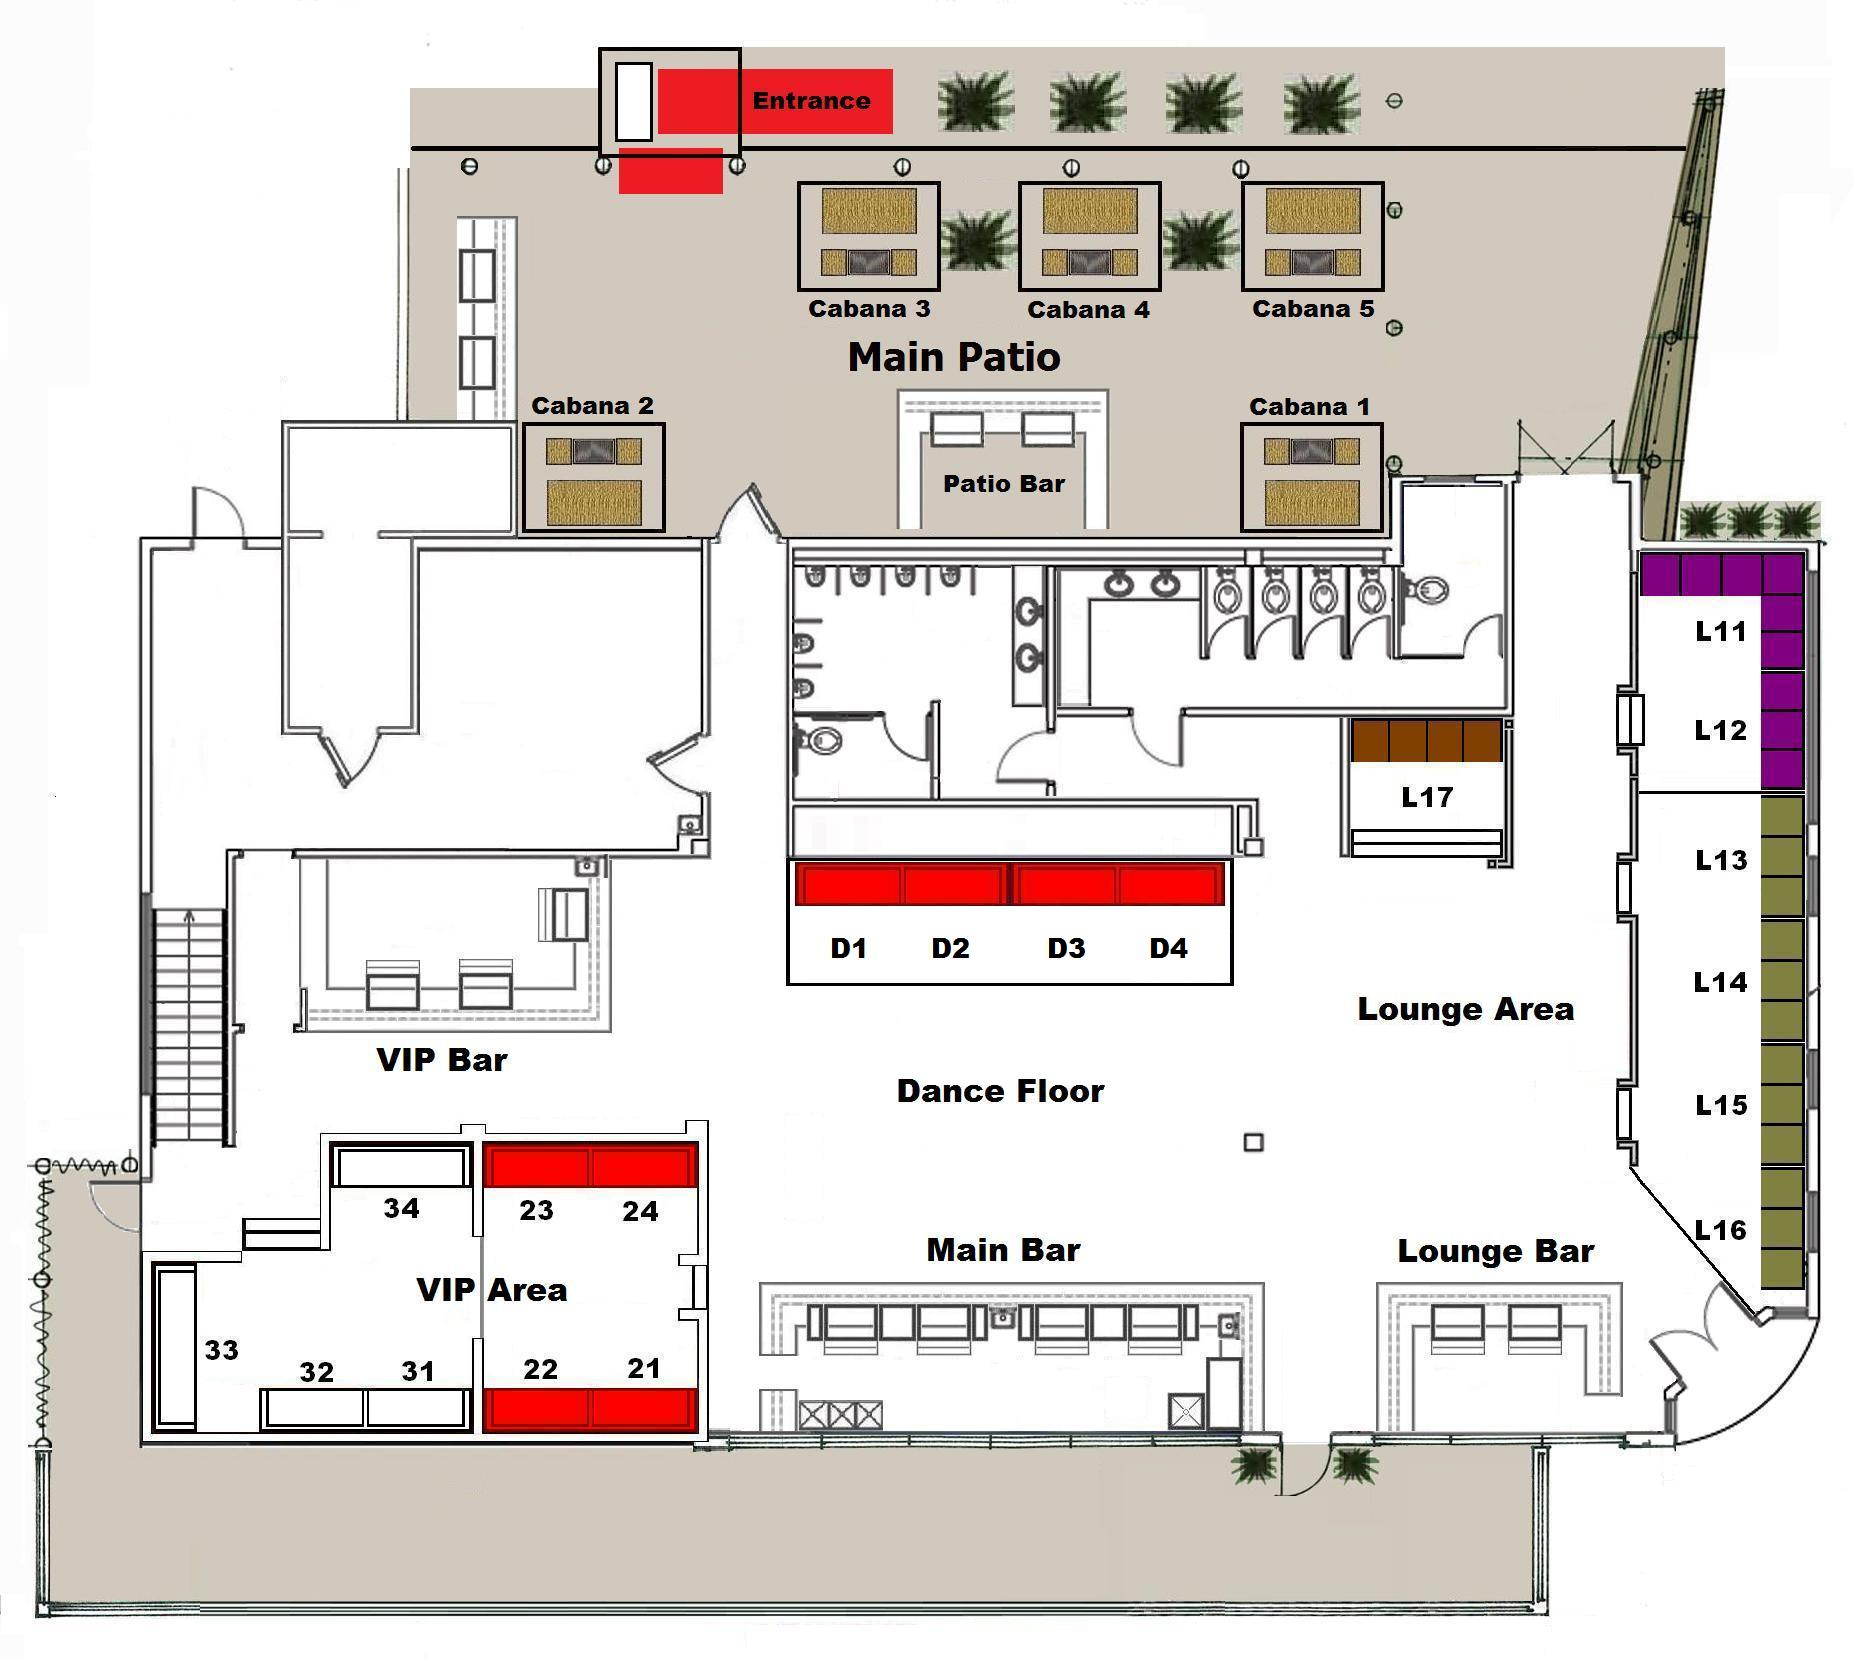 Club floor plans over 5000 house plans for Nightclub floor plans